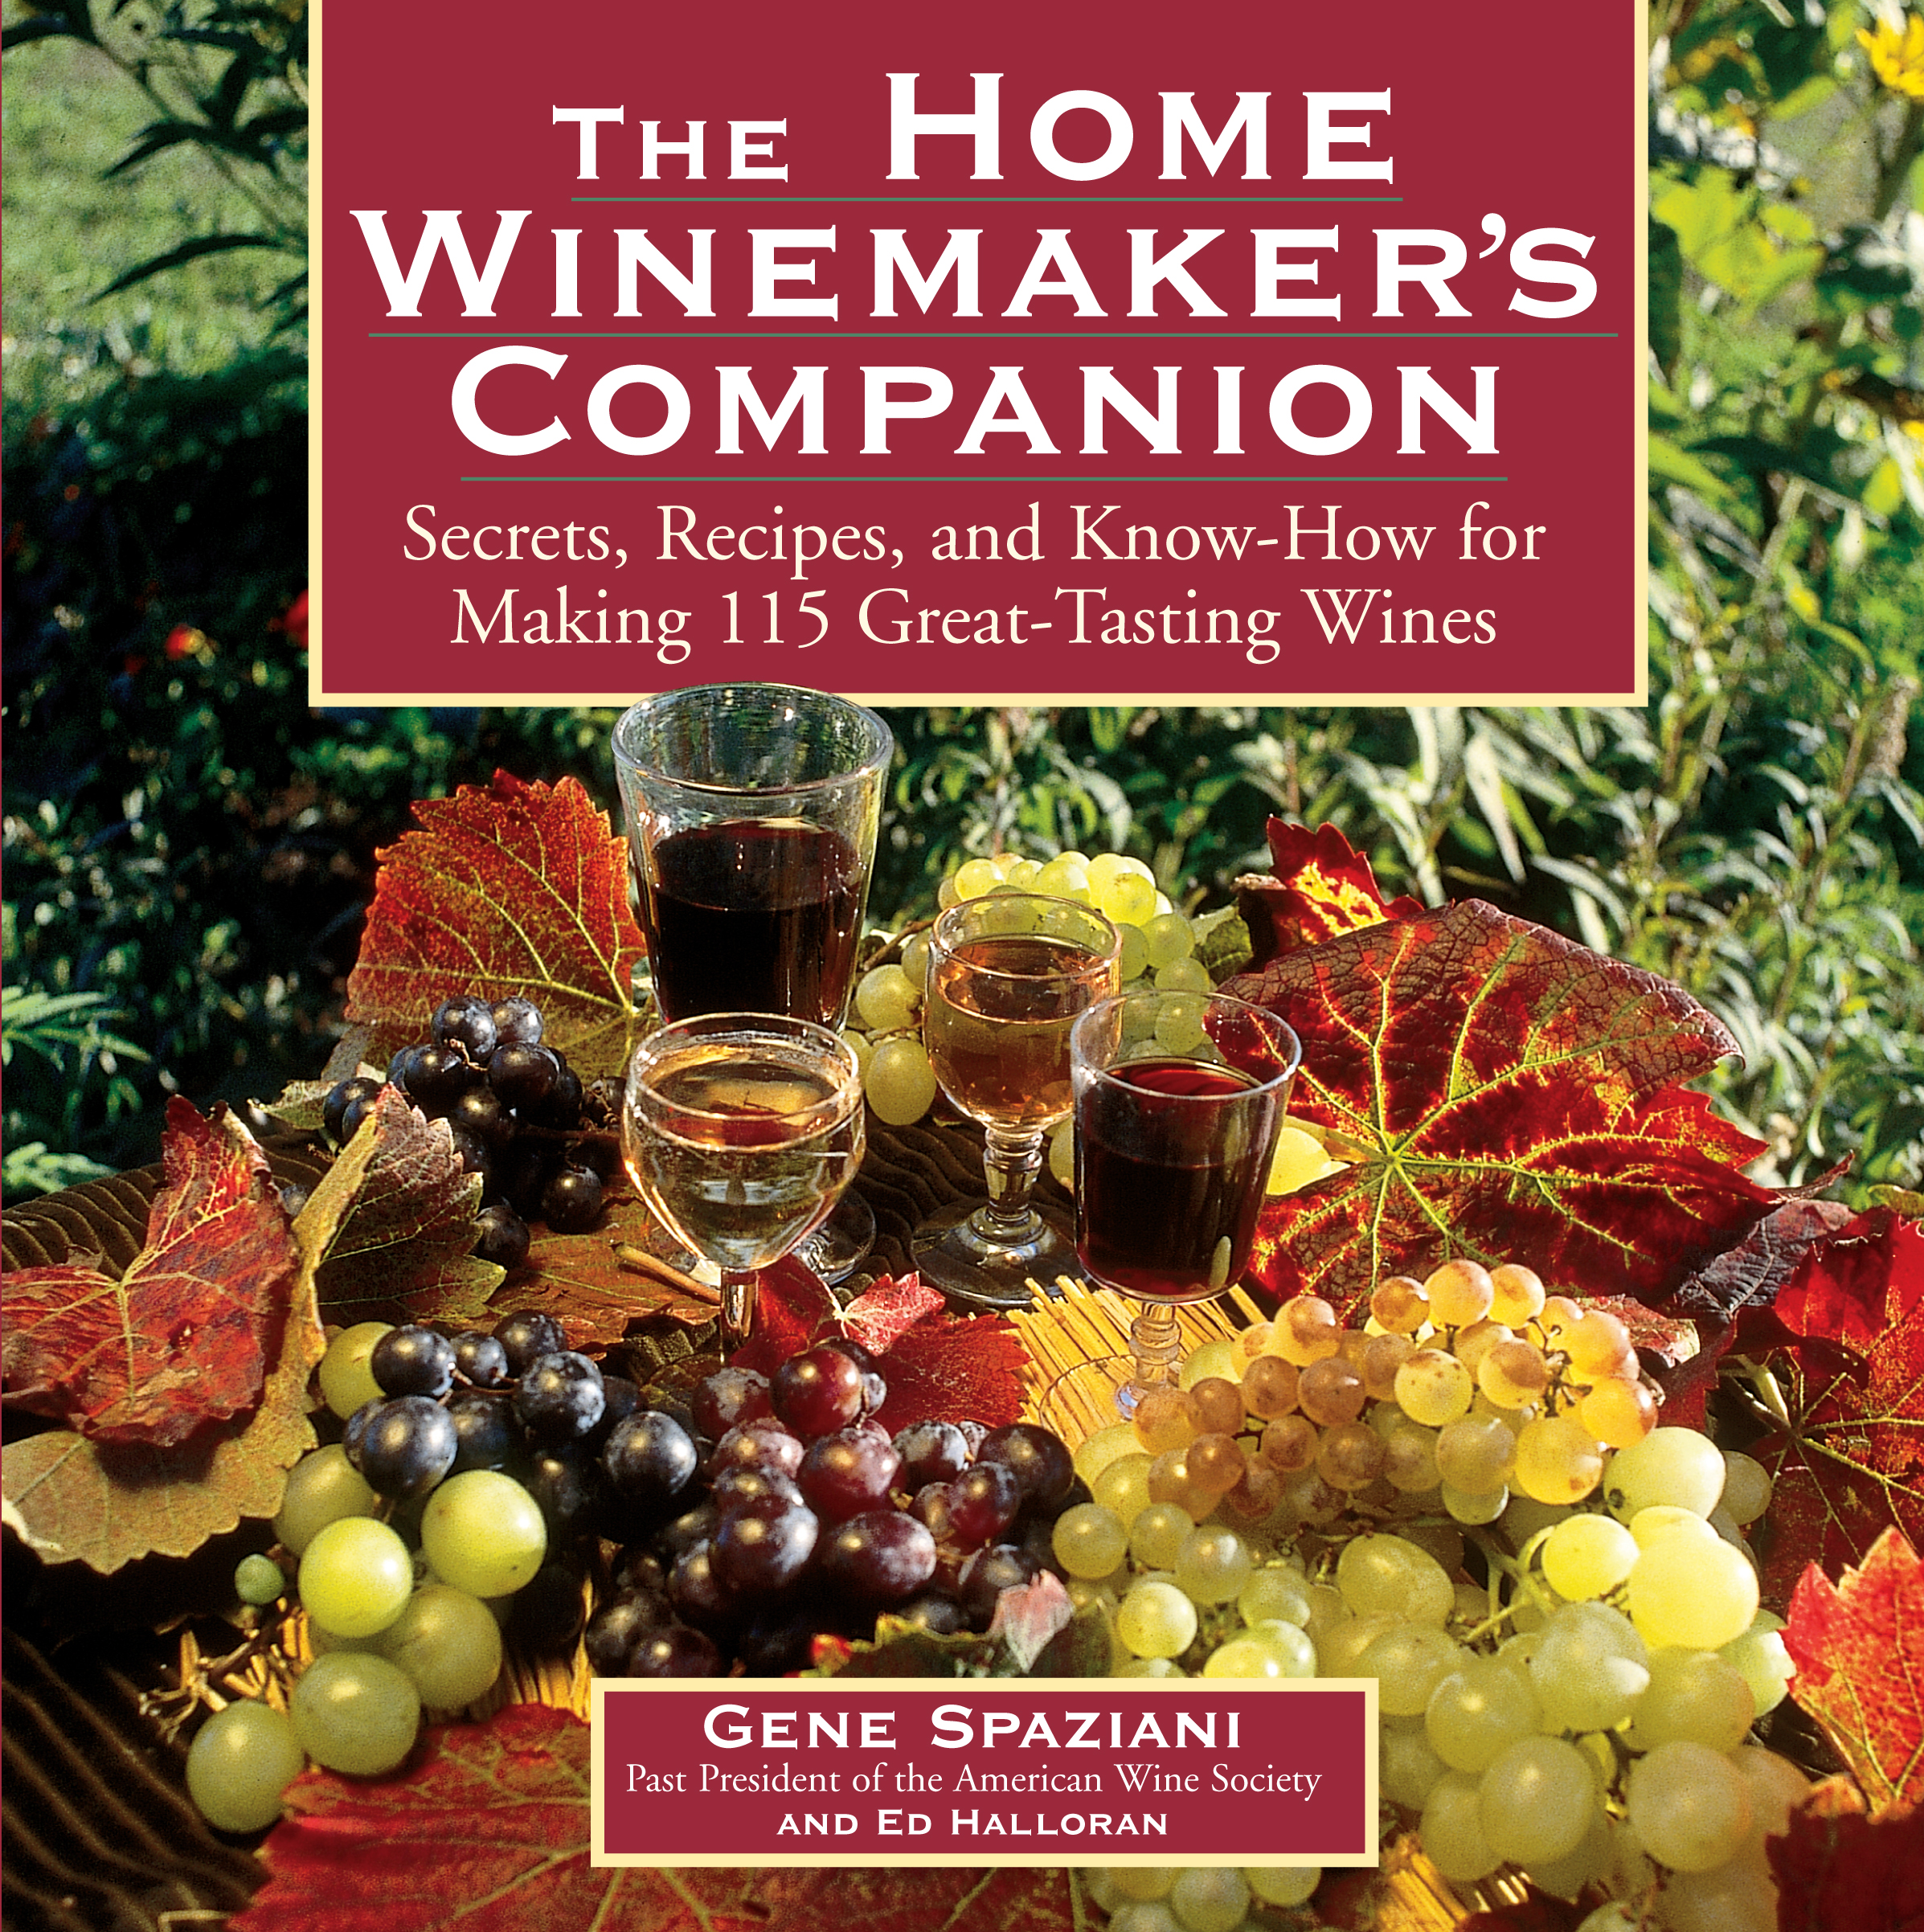 The Home Winemaker's Companion Secrets, Recipes, and Know-How for Making 115 Great-Tasting Wines - Ed Halloran